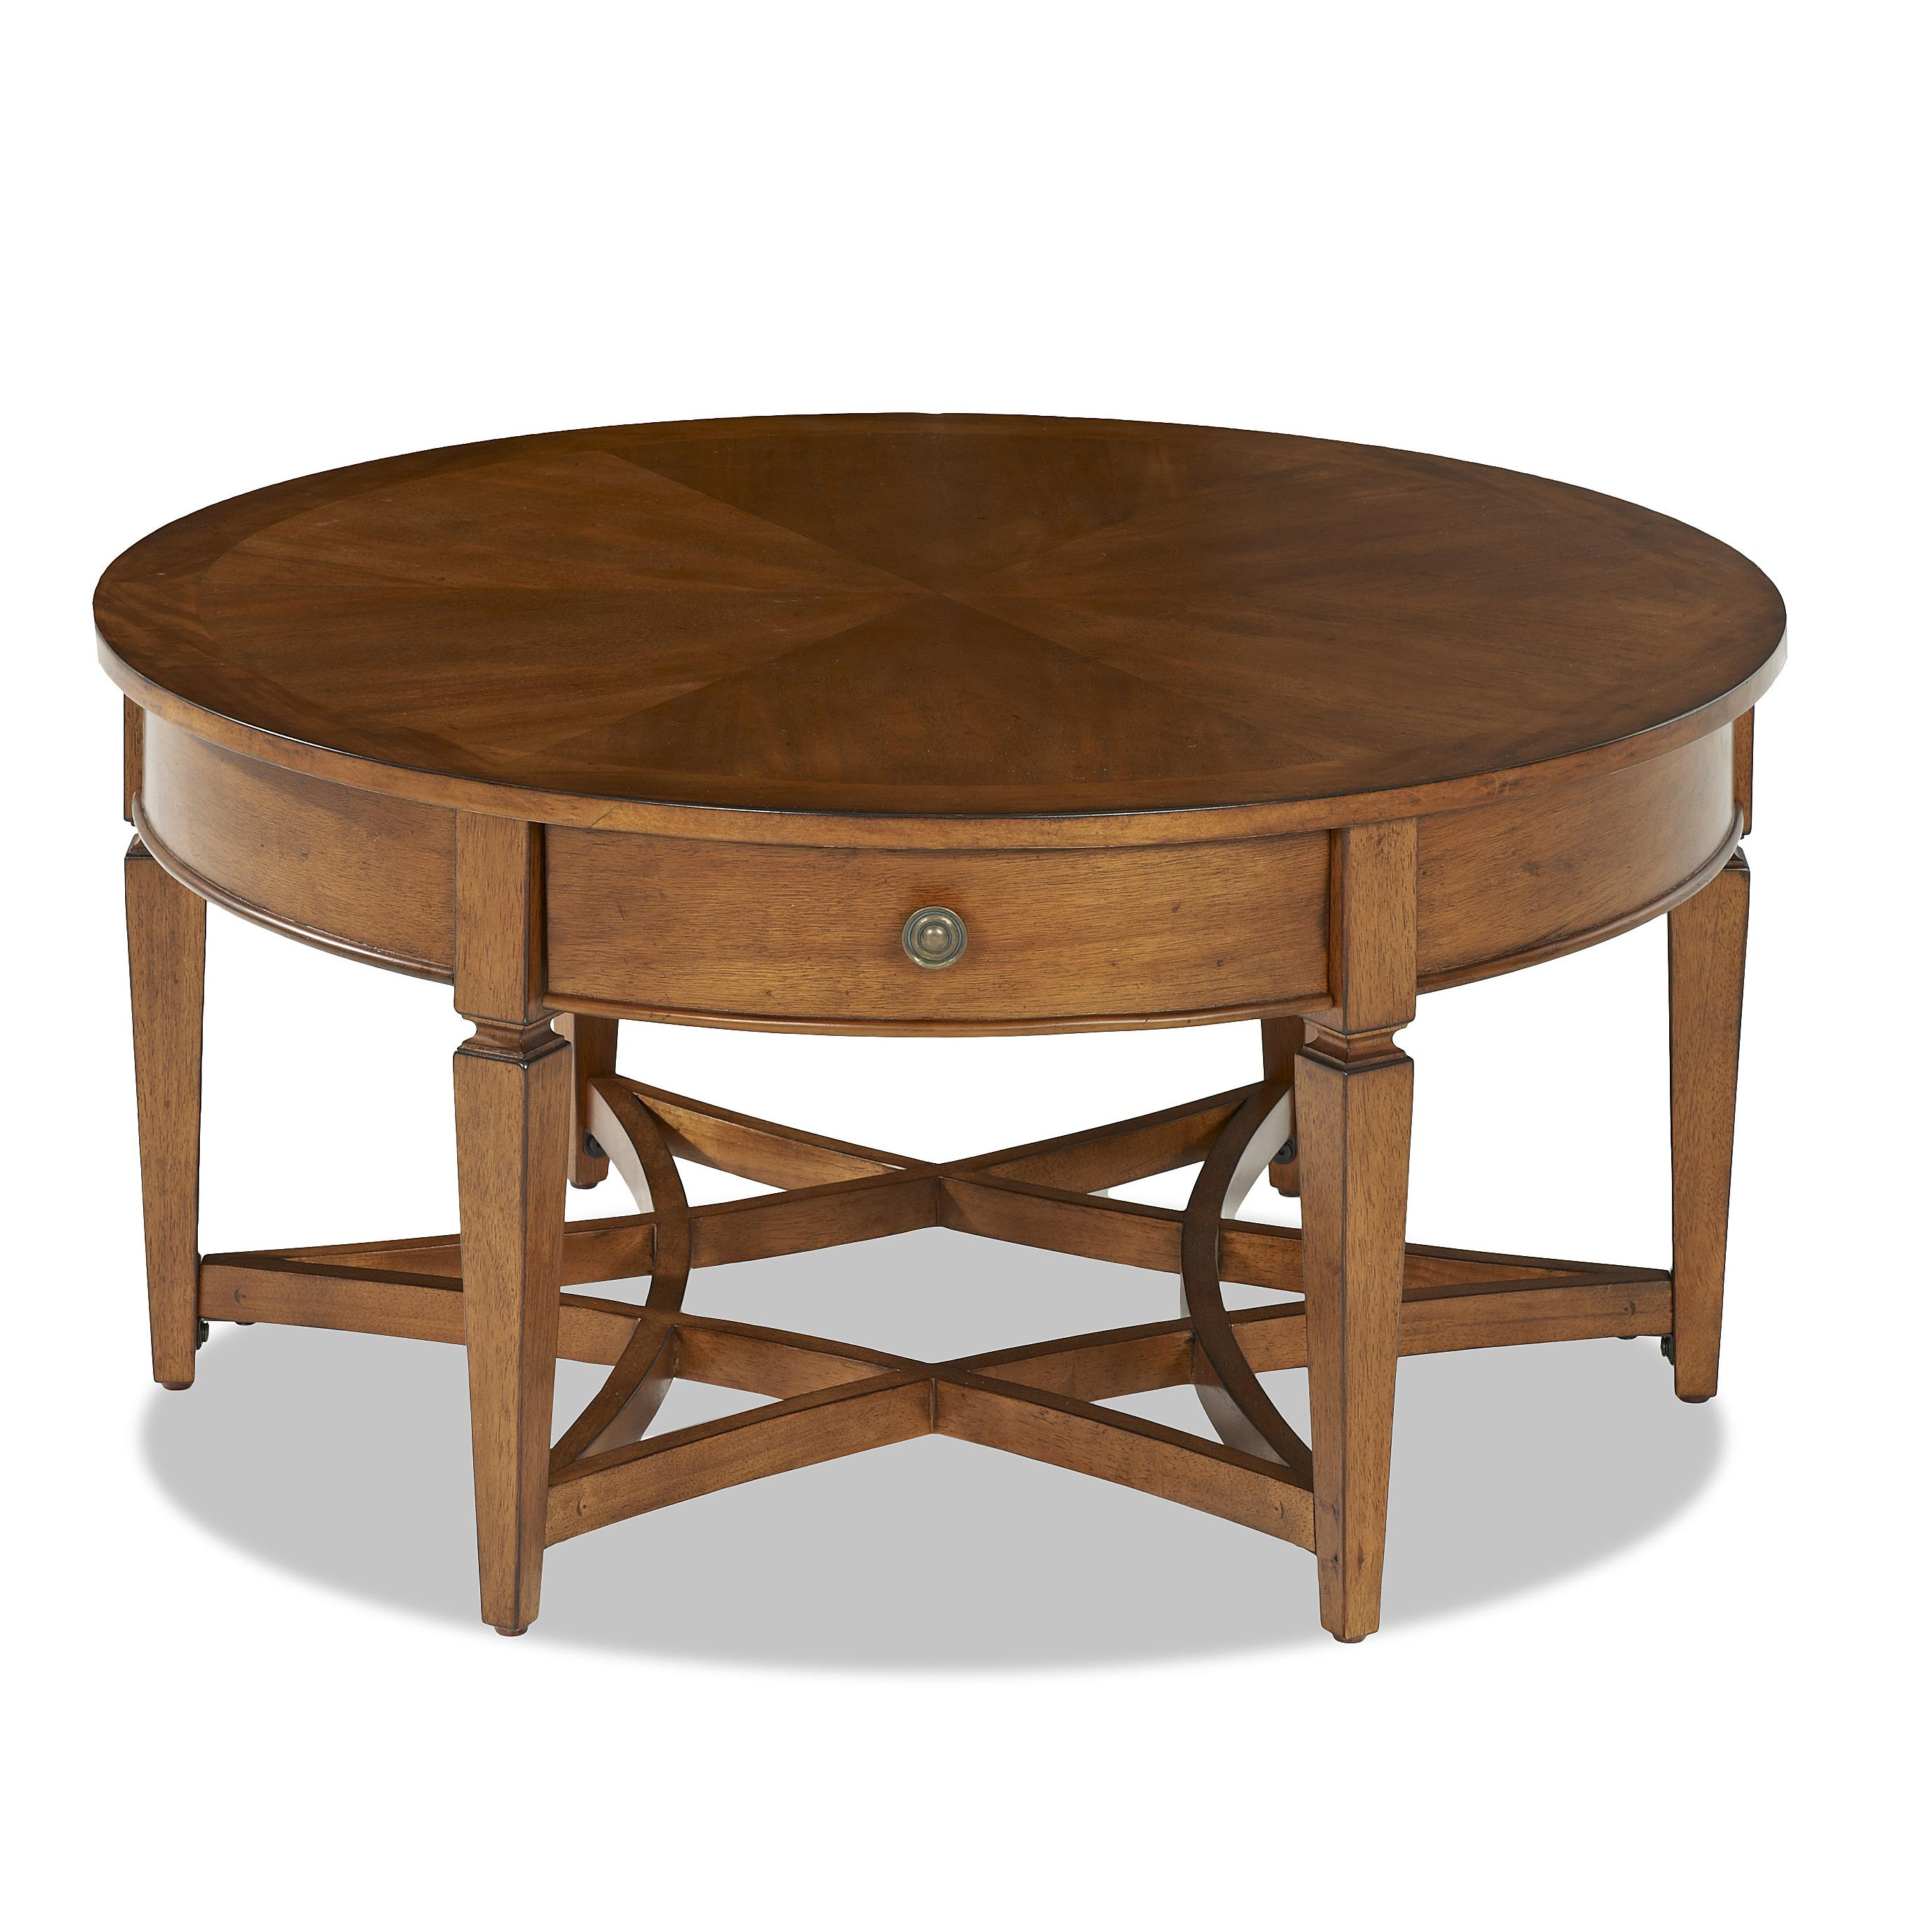 Round Coffee Table With Drawers Worthington Round Cocktail Table With 1 Drawer Rotmans